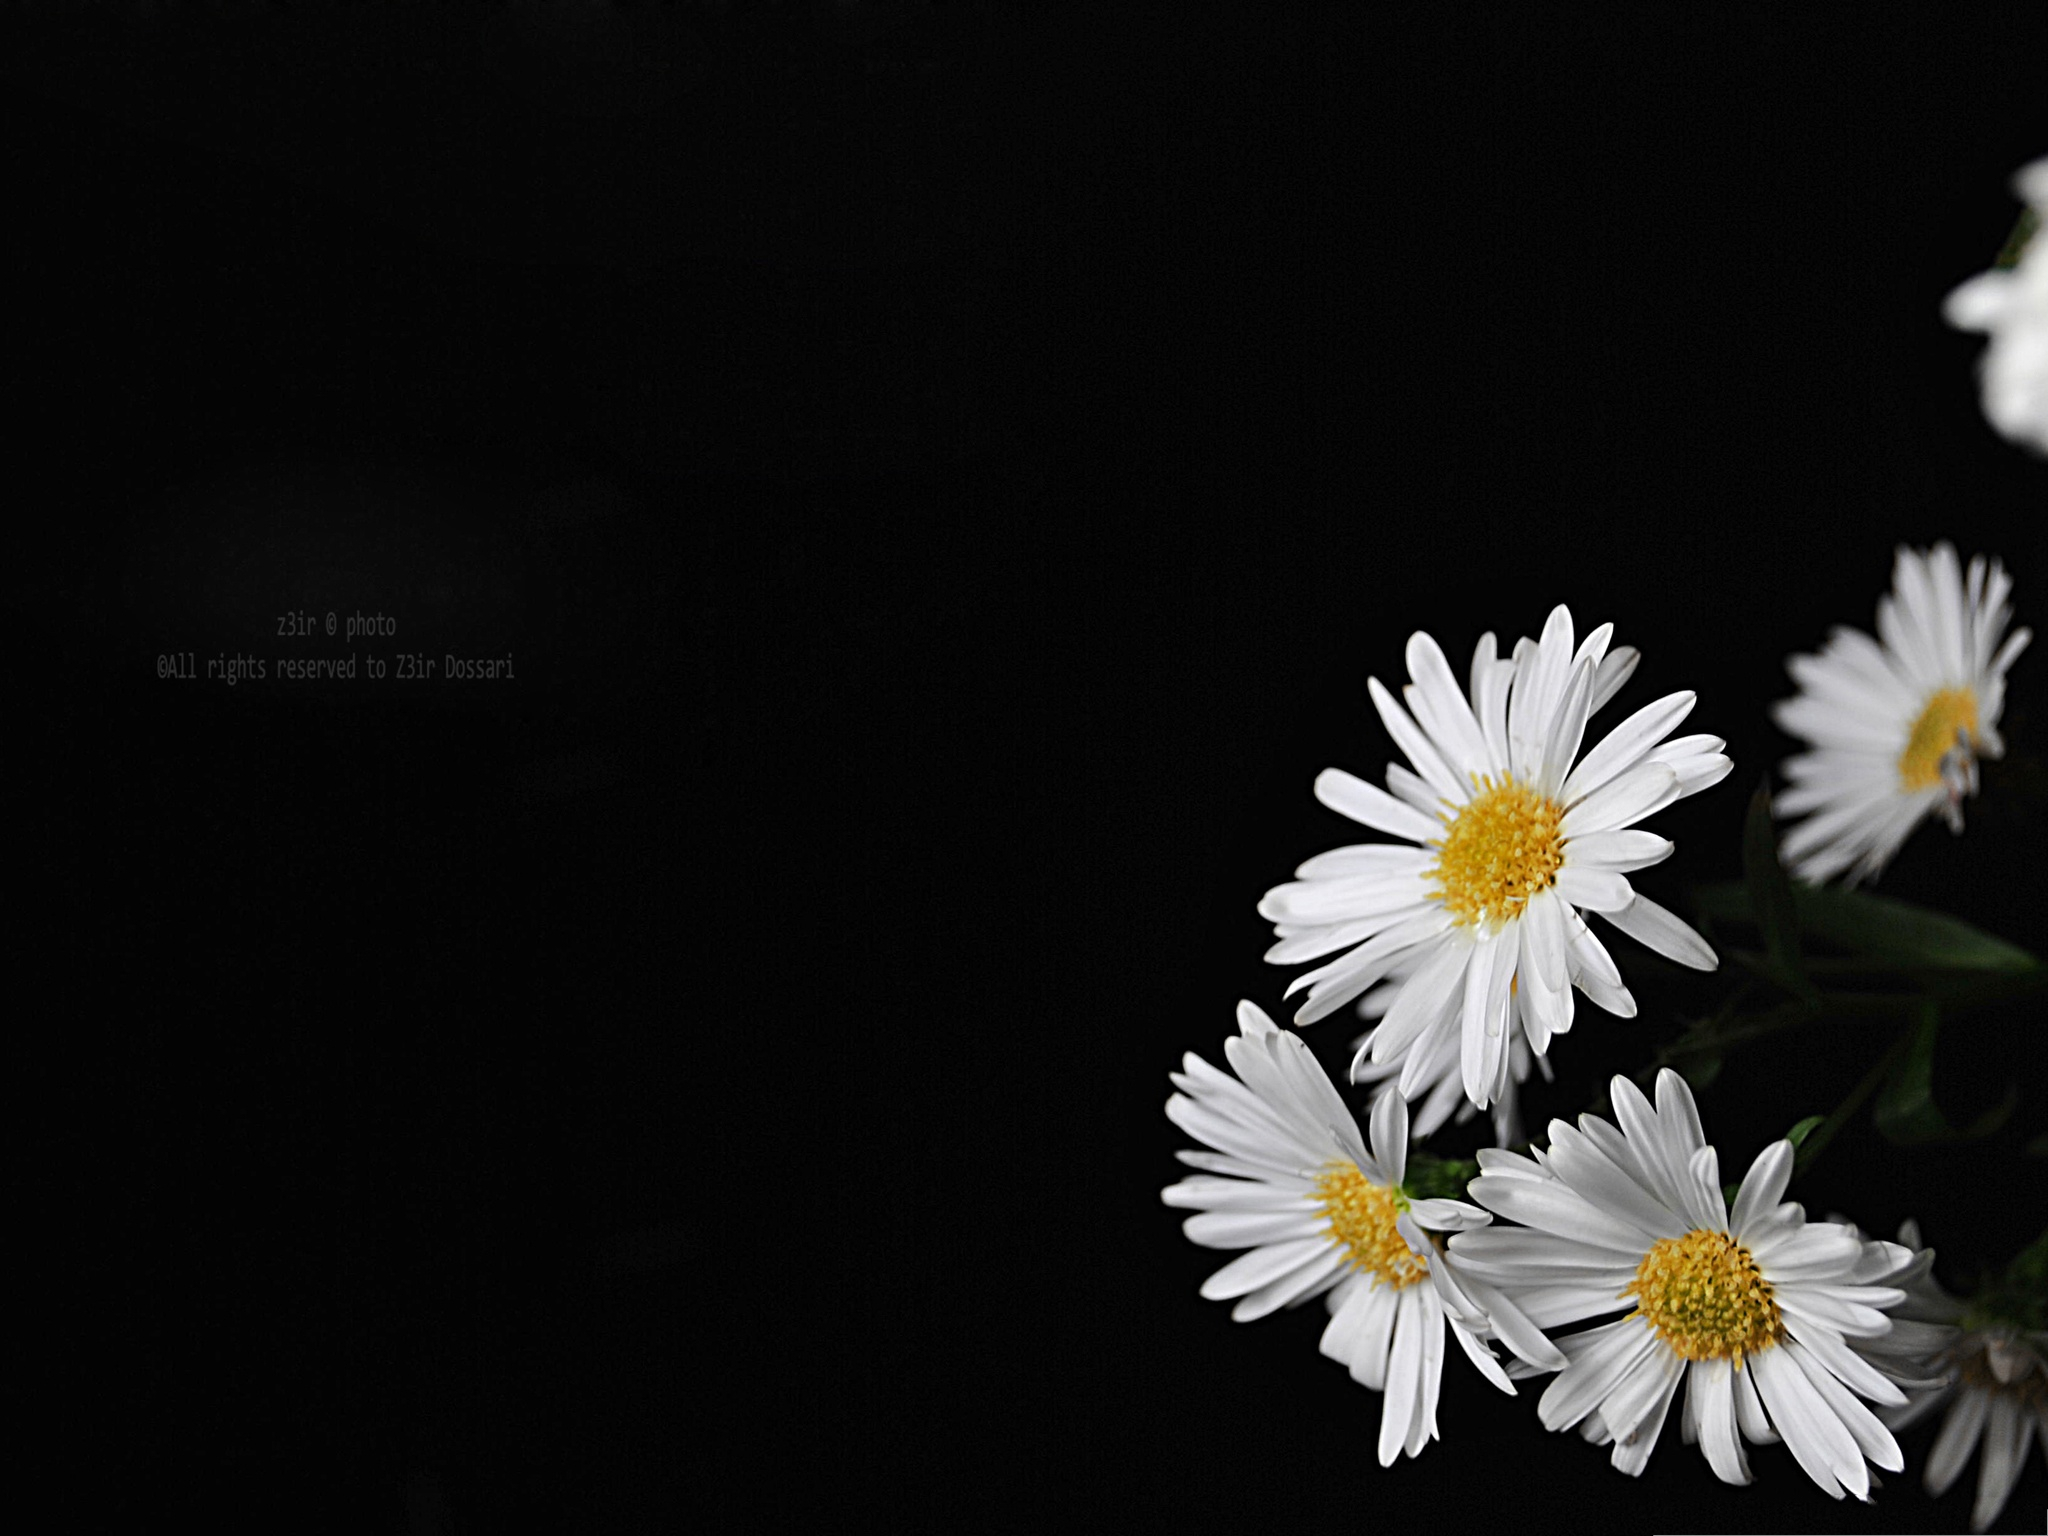 Wallpaper Black Background Flowers